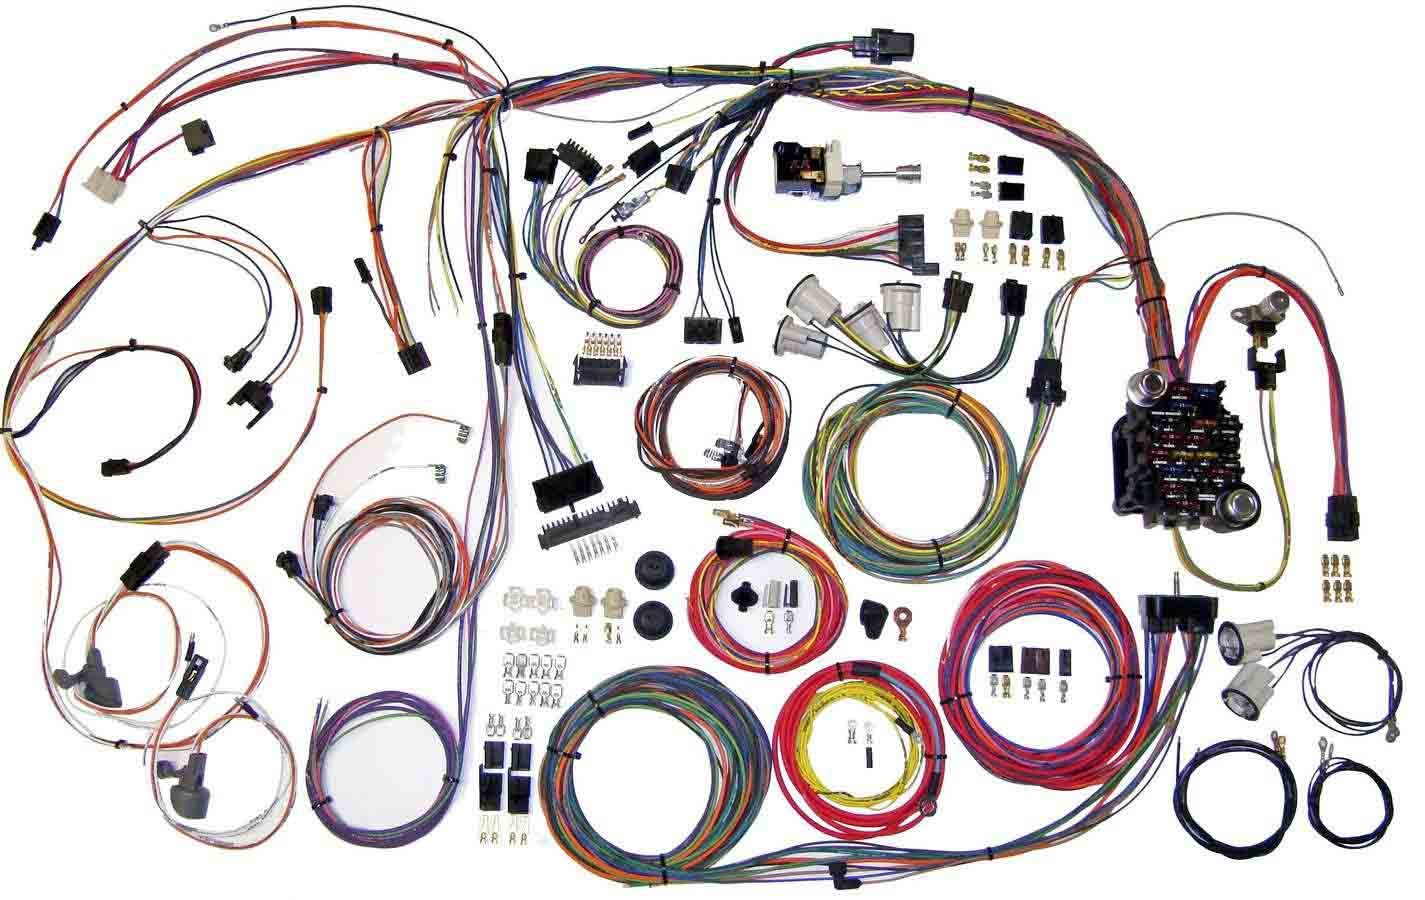 El Wiring Diagrams 1970 Chevelle Wiper Motor Diagram Wiring Diagram Verison Verison Lastanzadeltempo It